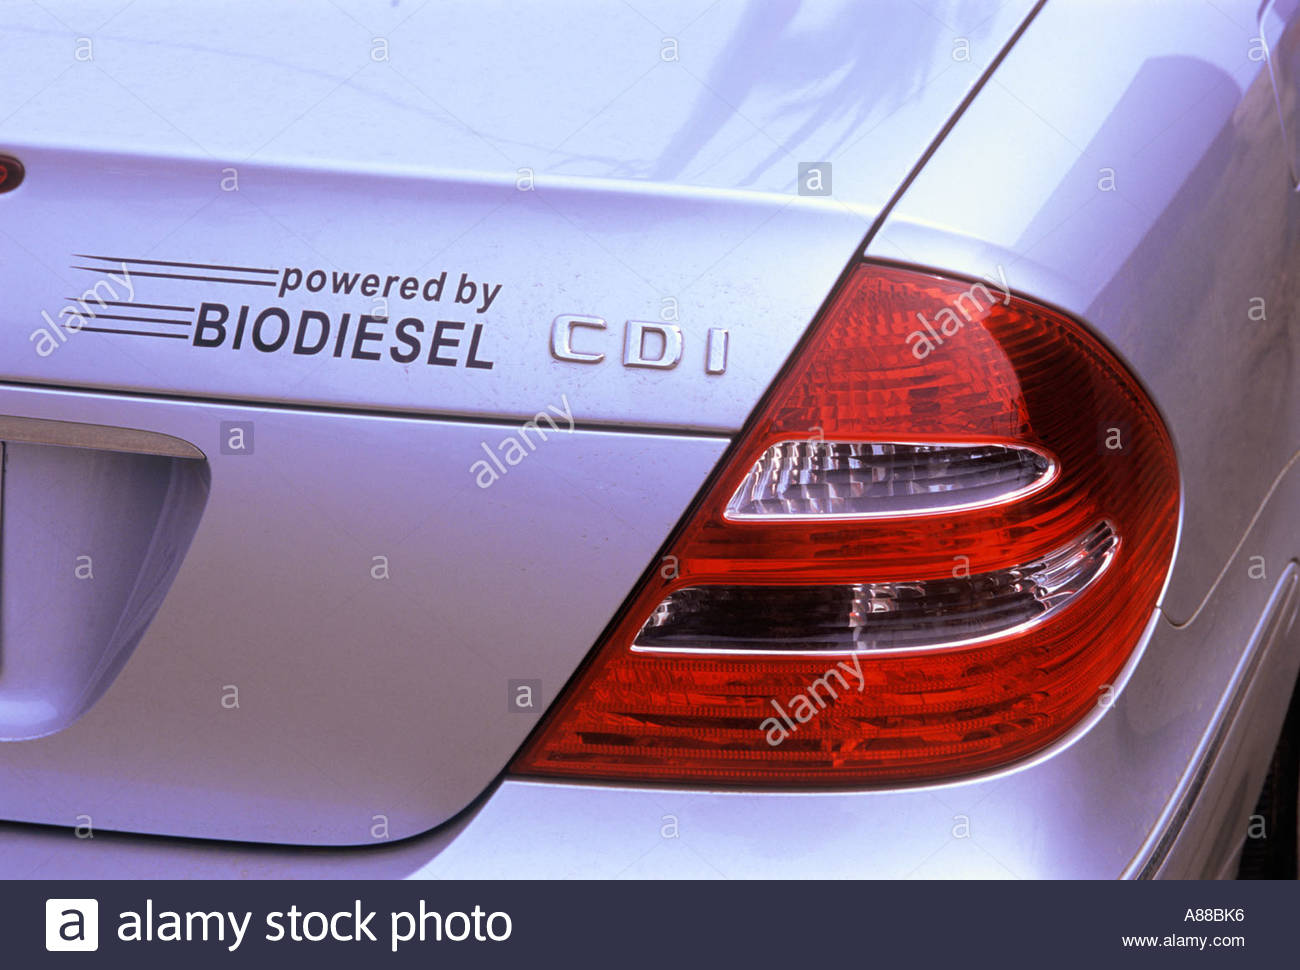 car-powered-by-biodiesel-fuel-on-the-isl